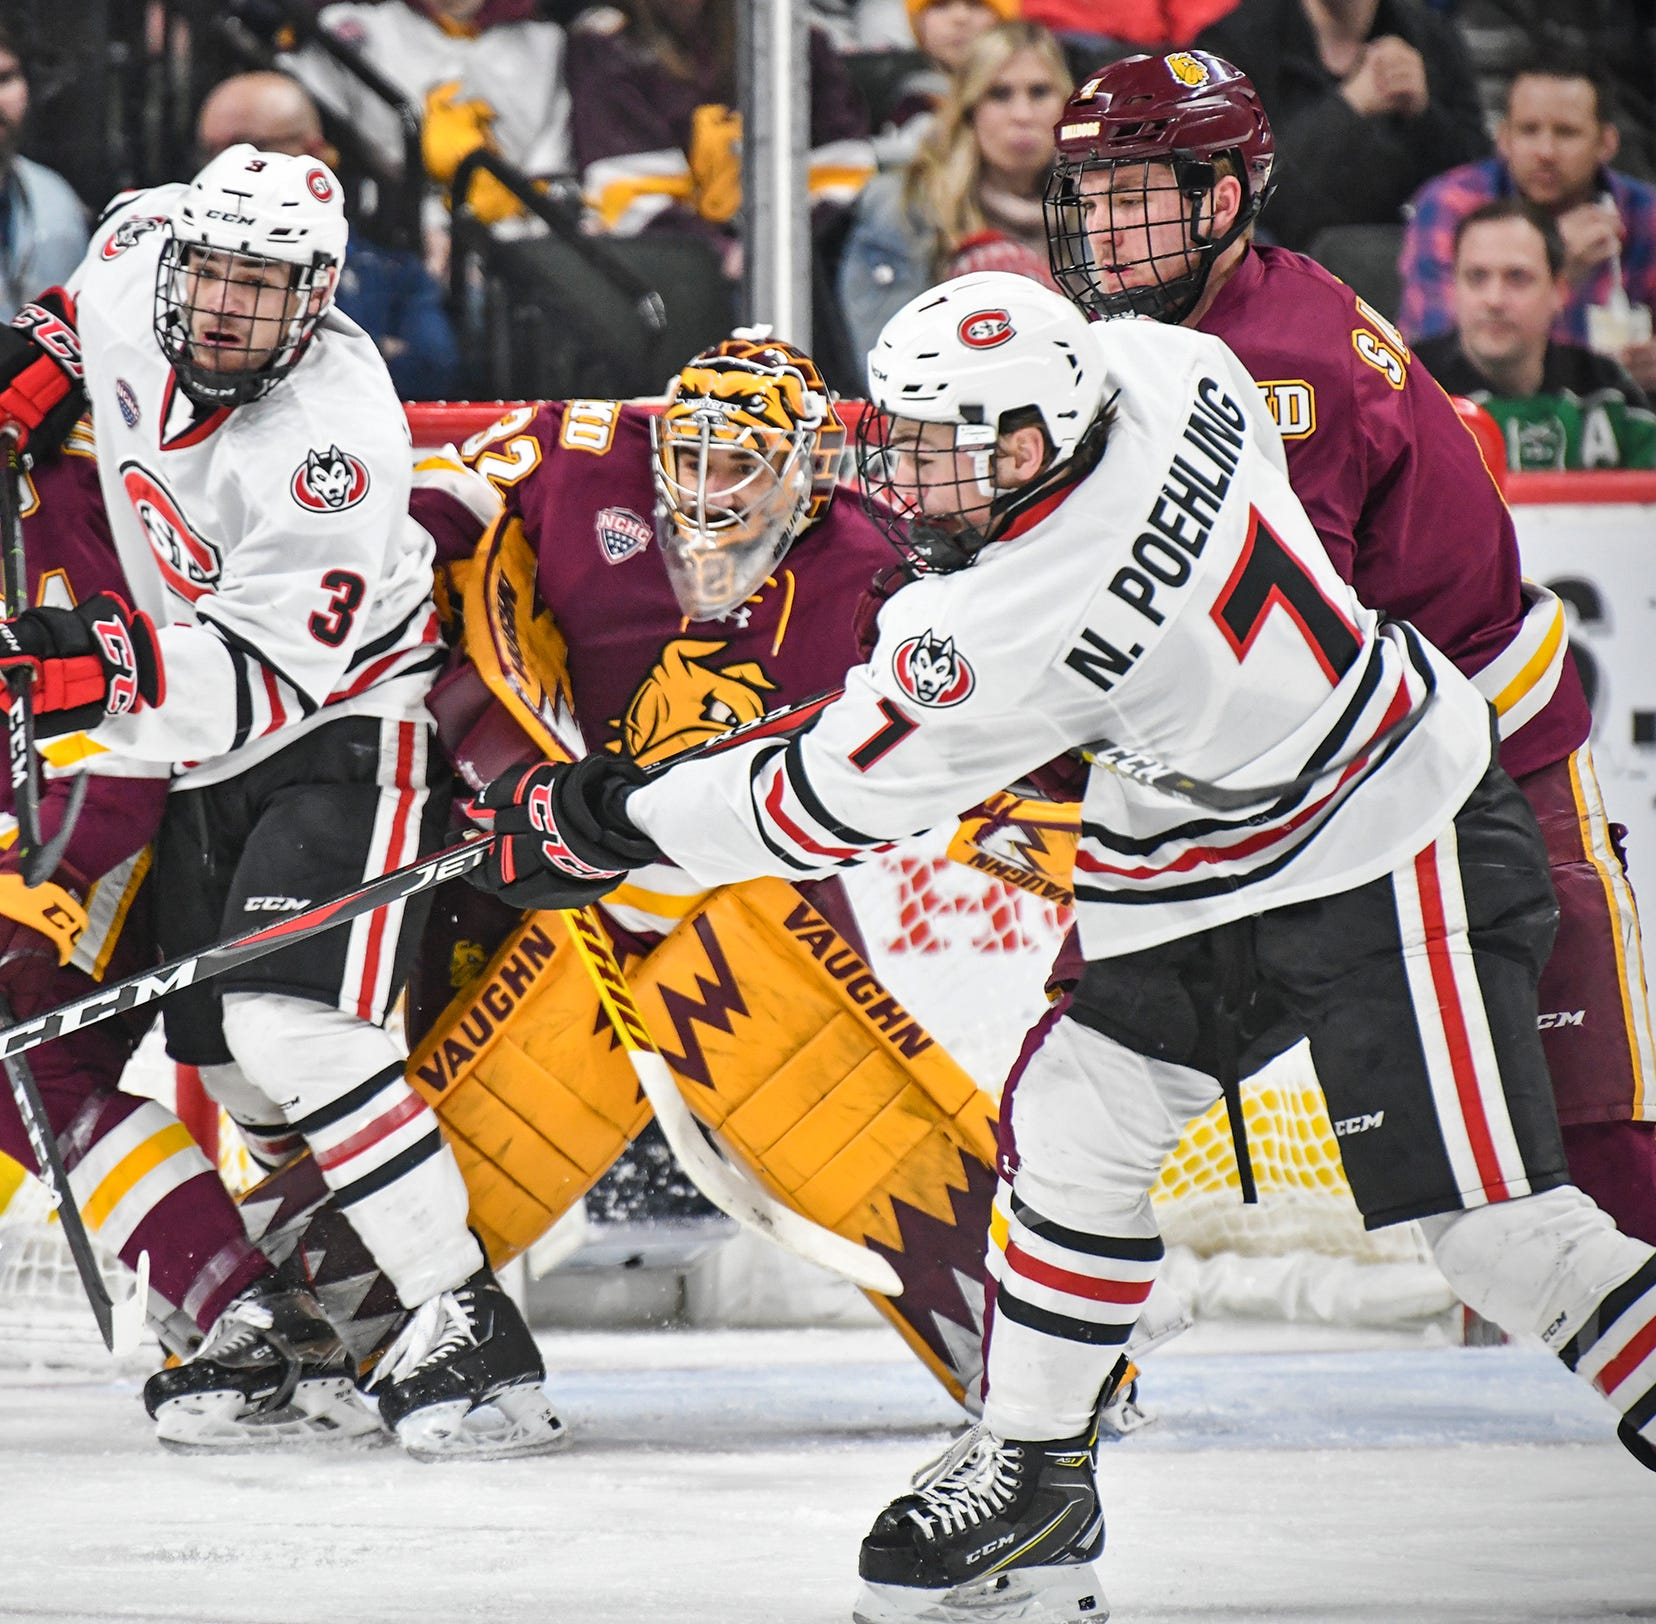 SCSU falls to UMD in double OT, finishes as NCHC Faceoff runner-up